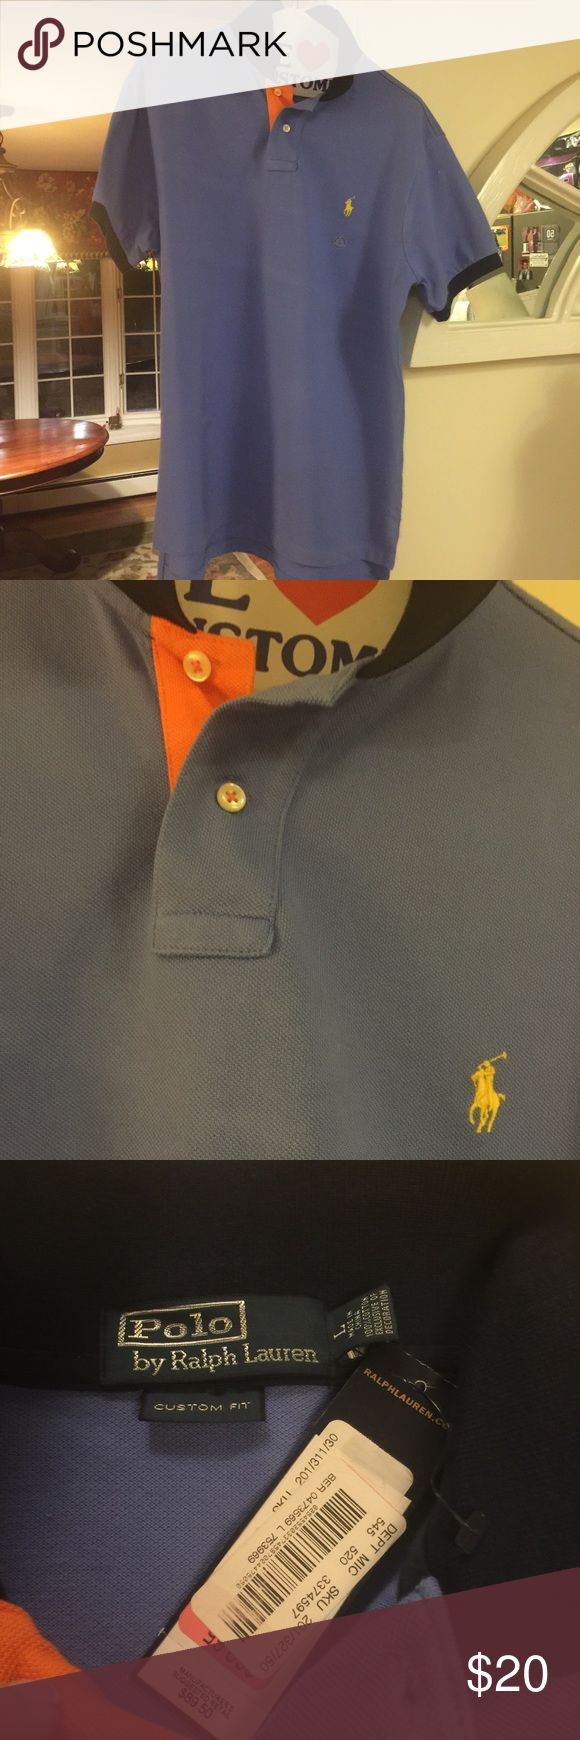 NWT RL Polo Custom Fit cotton pique polo shirt Brand new/never worn.  Bought for son who never wore it.  Pique cotton in blue, with navy collar and around arm sleeves, with yellow polo logo and a hint of orange at two front button closure. Polo by Ralph Lauren Shirts Polos